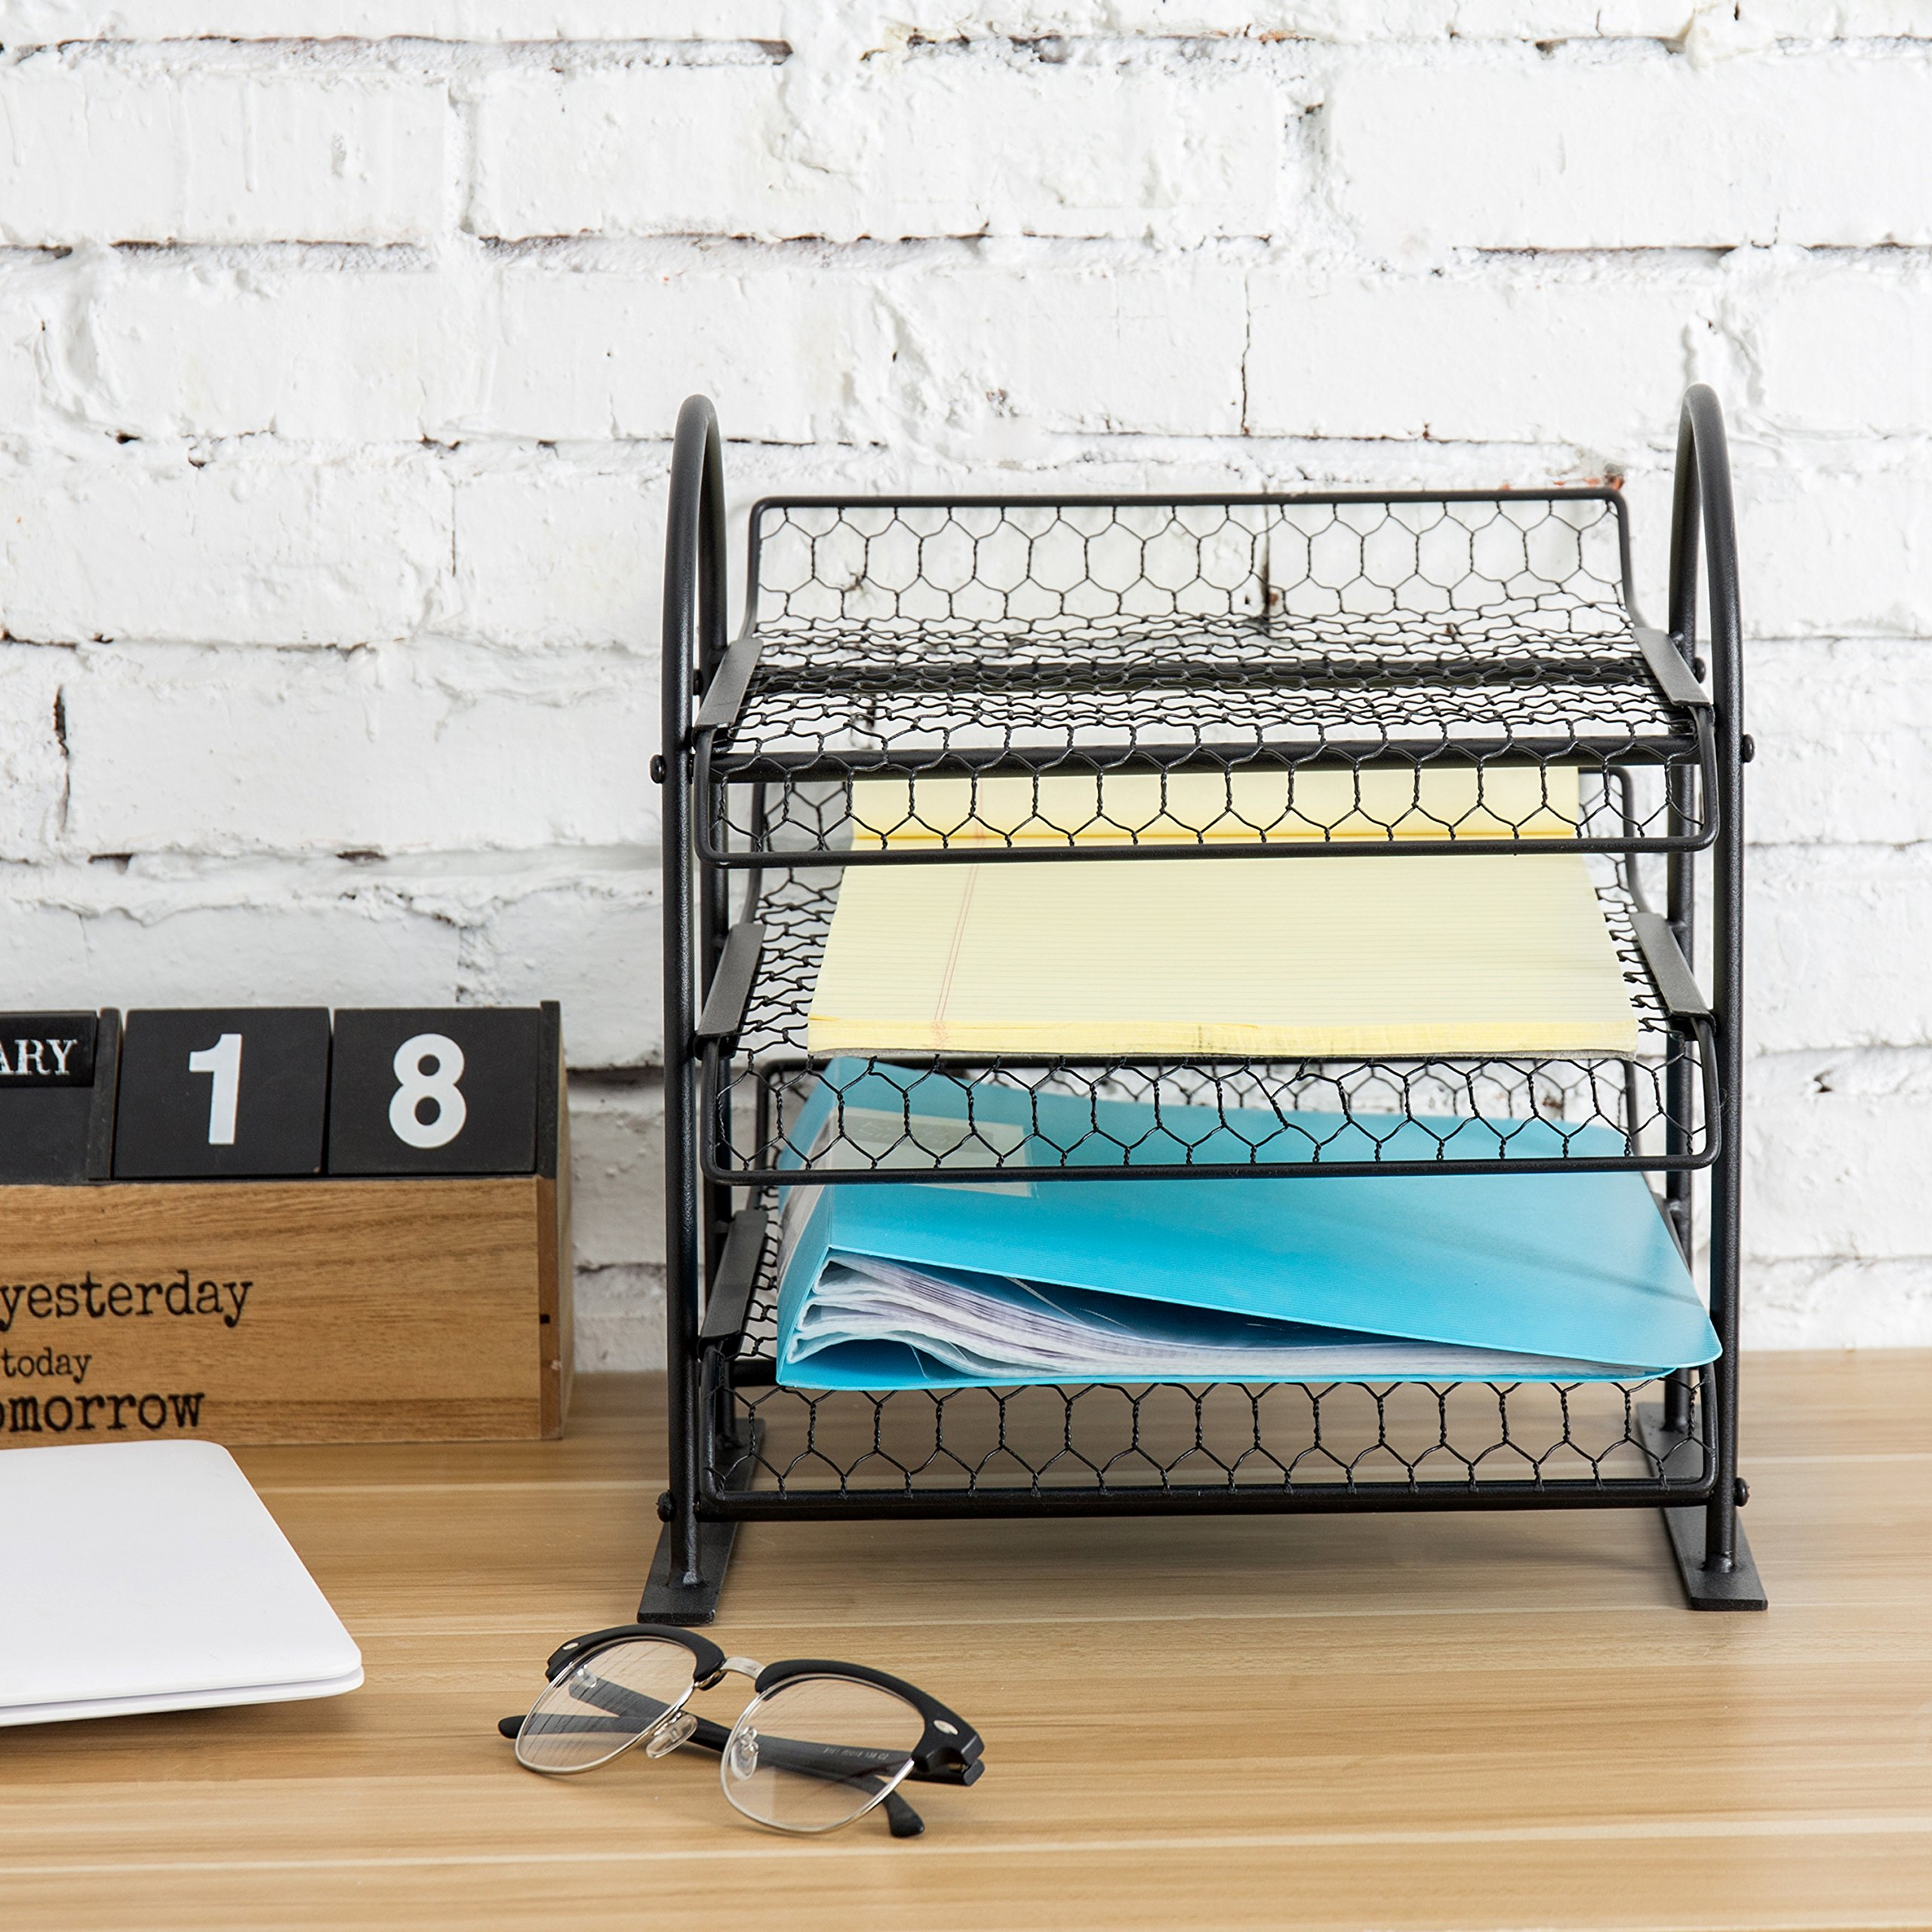 MyGift Metal Chicken Wire Office Document File Organizer with 3-Tier Sliding Trays by MyGift (Image #2)